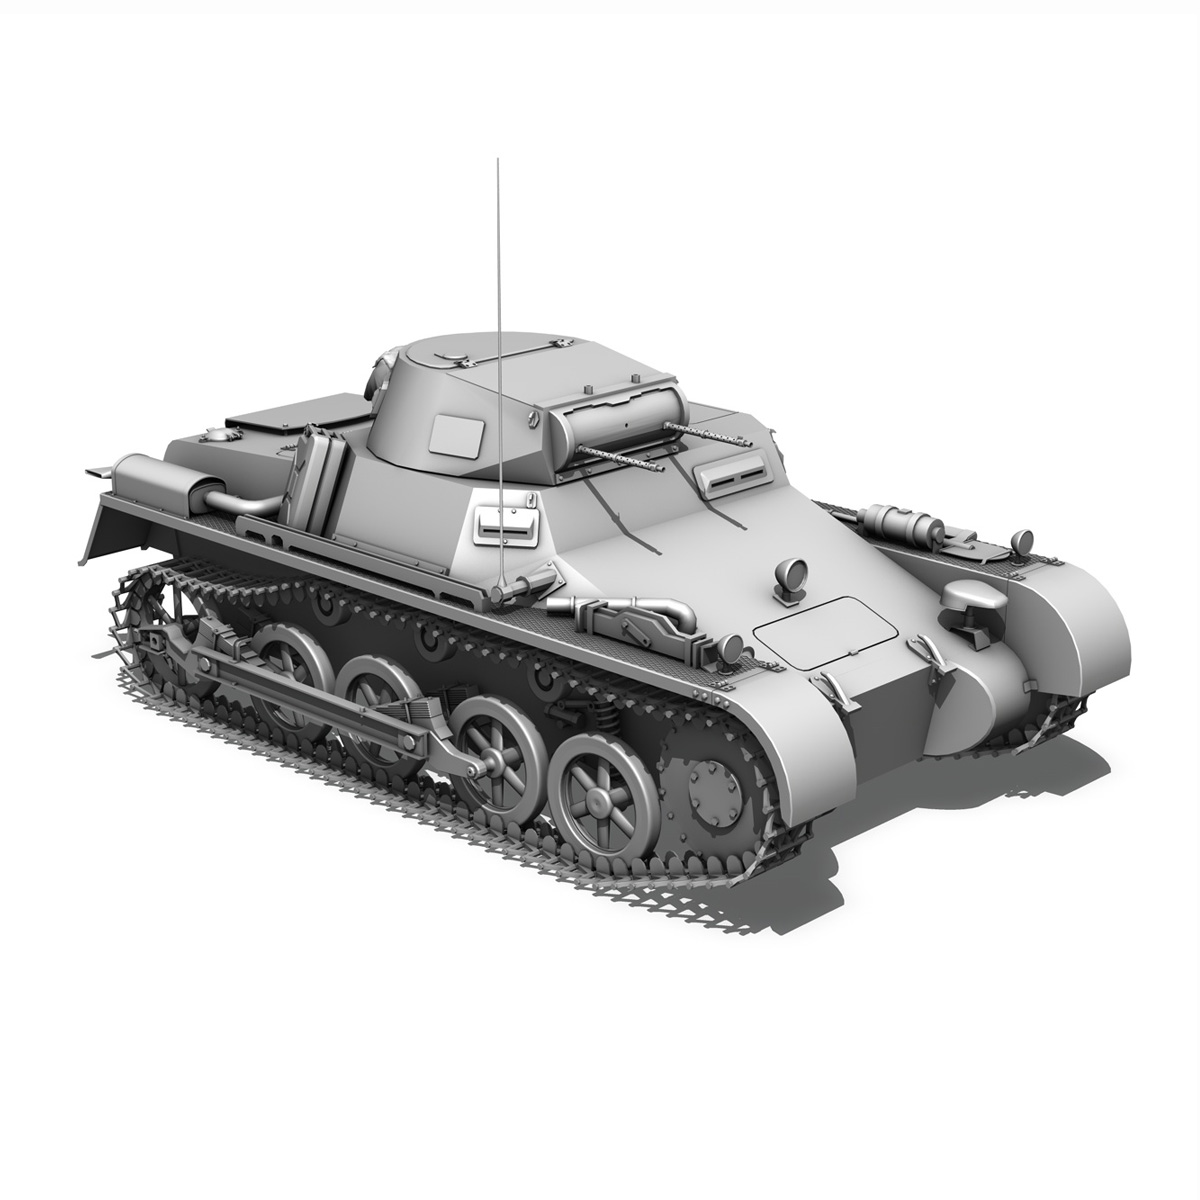 panzerkampfwagen 1 – panzer 1 collection 3d model 3ds fbx c4d lwo obj 189345